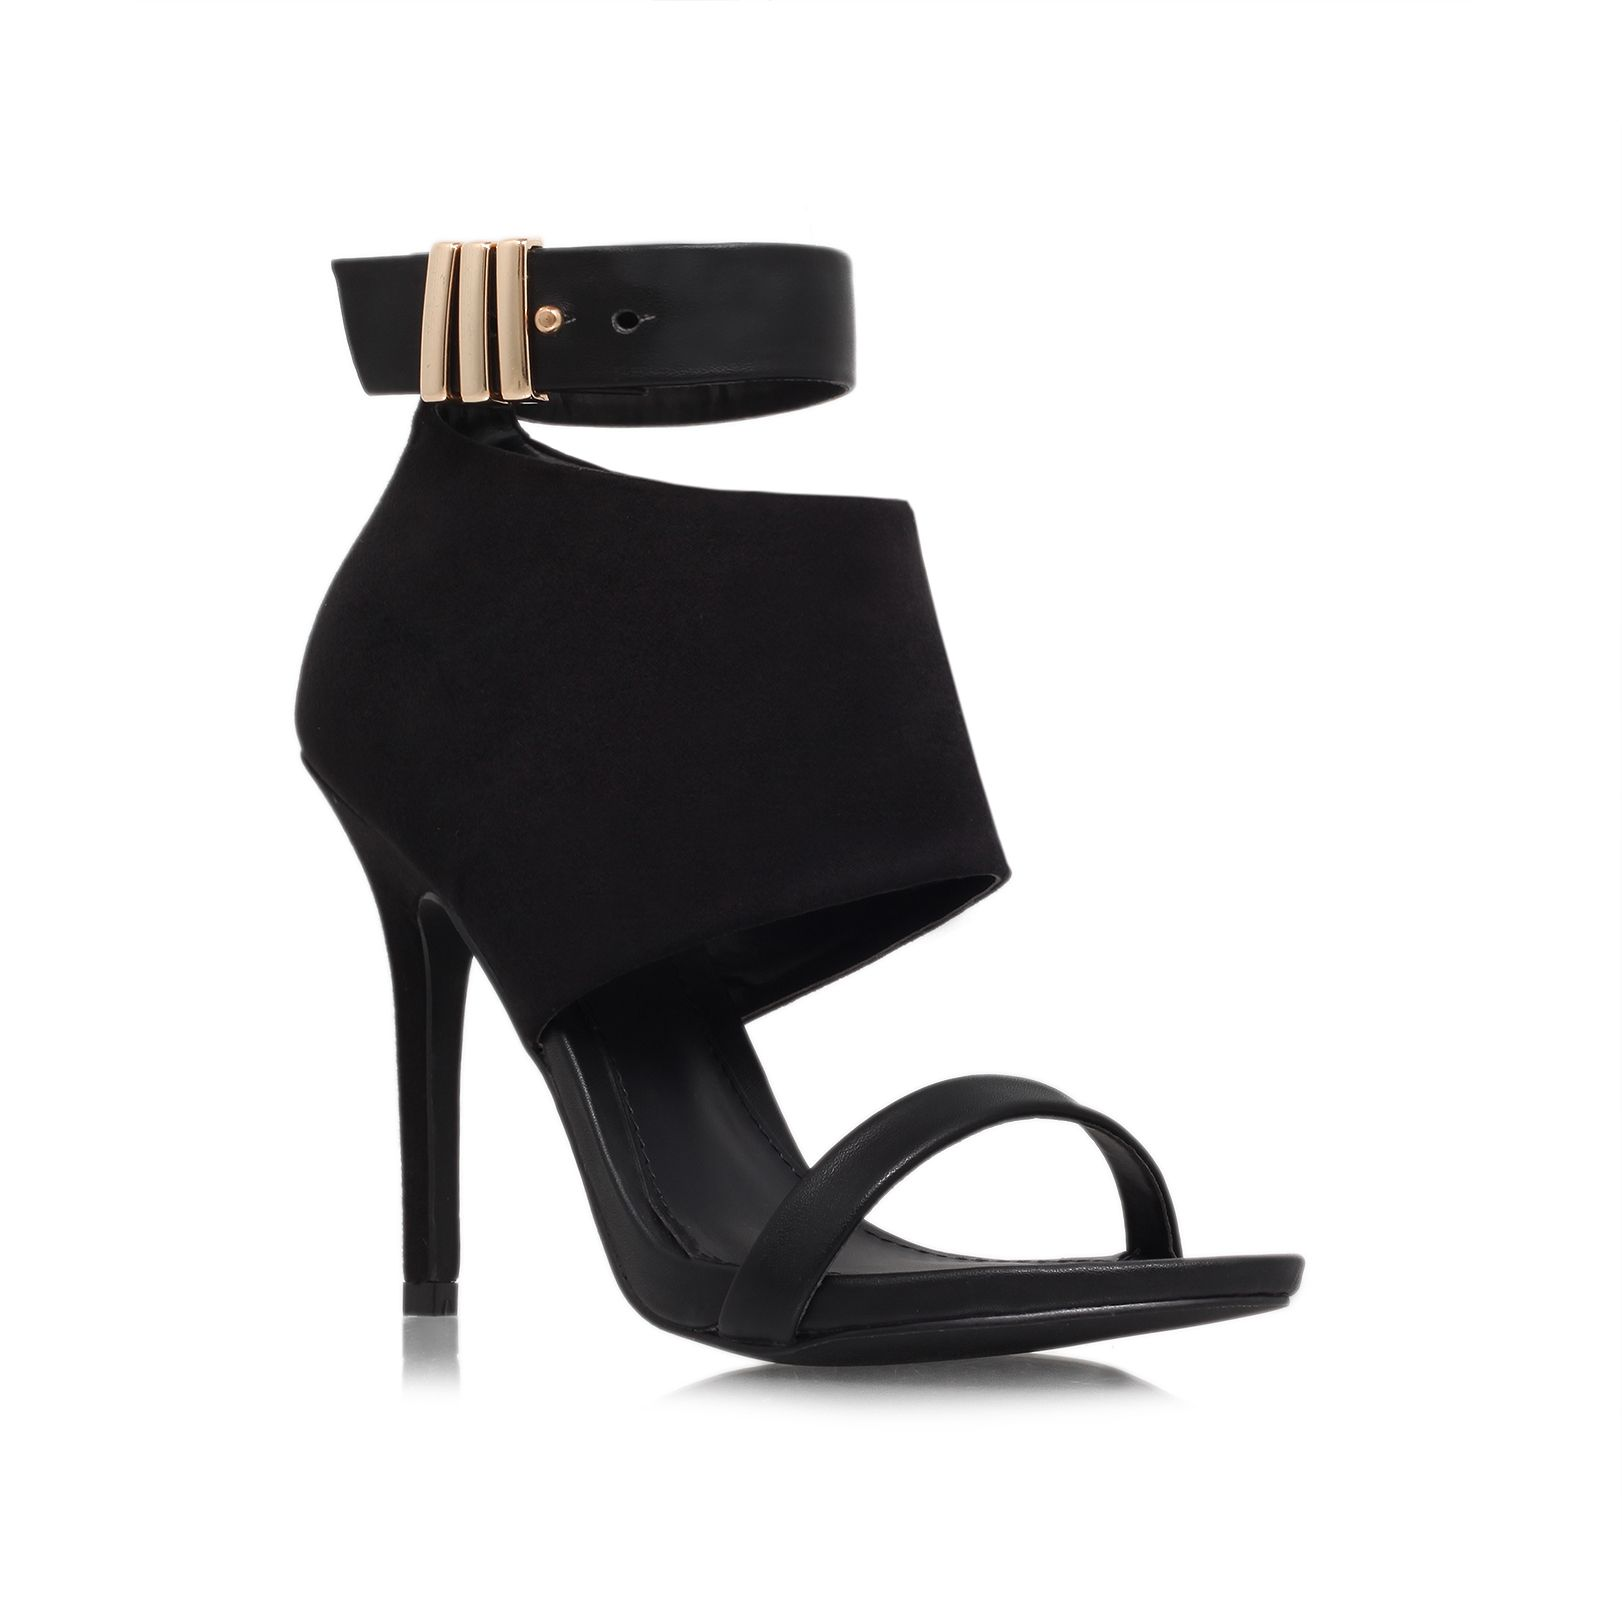 Empire high heel occasion shoes